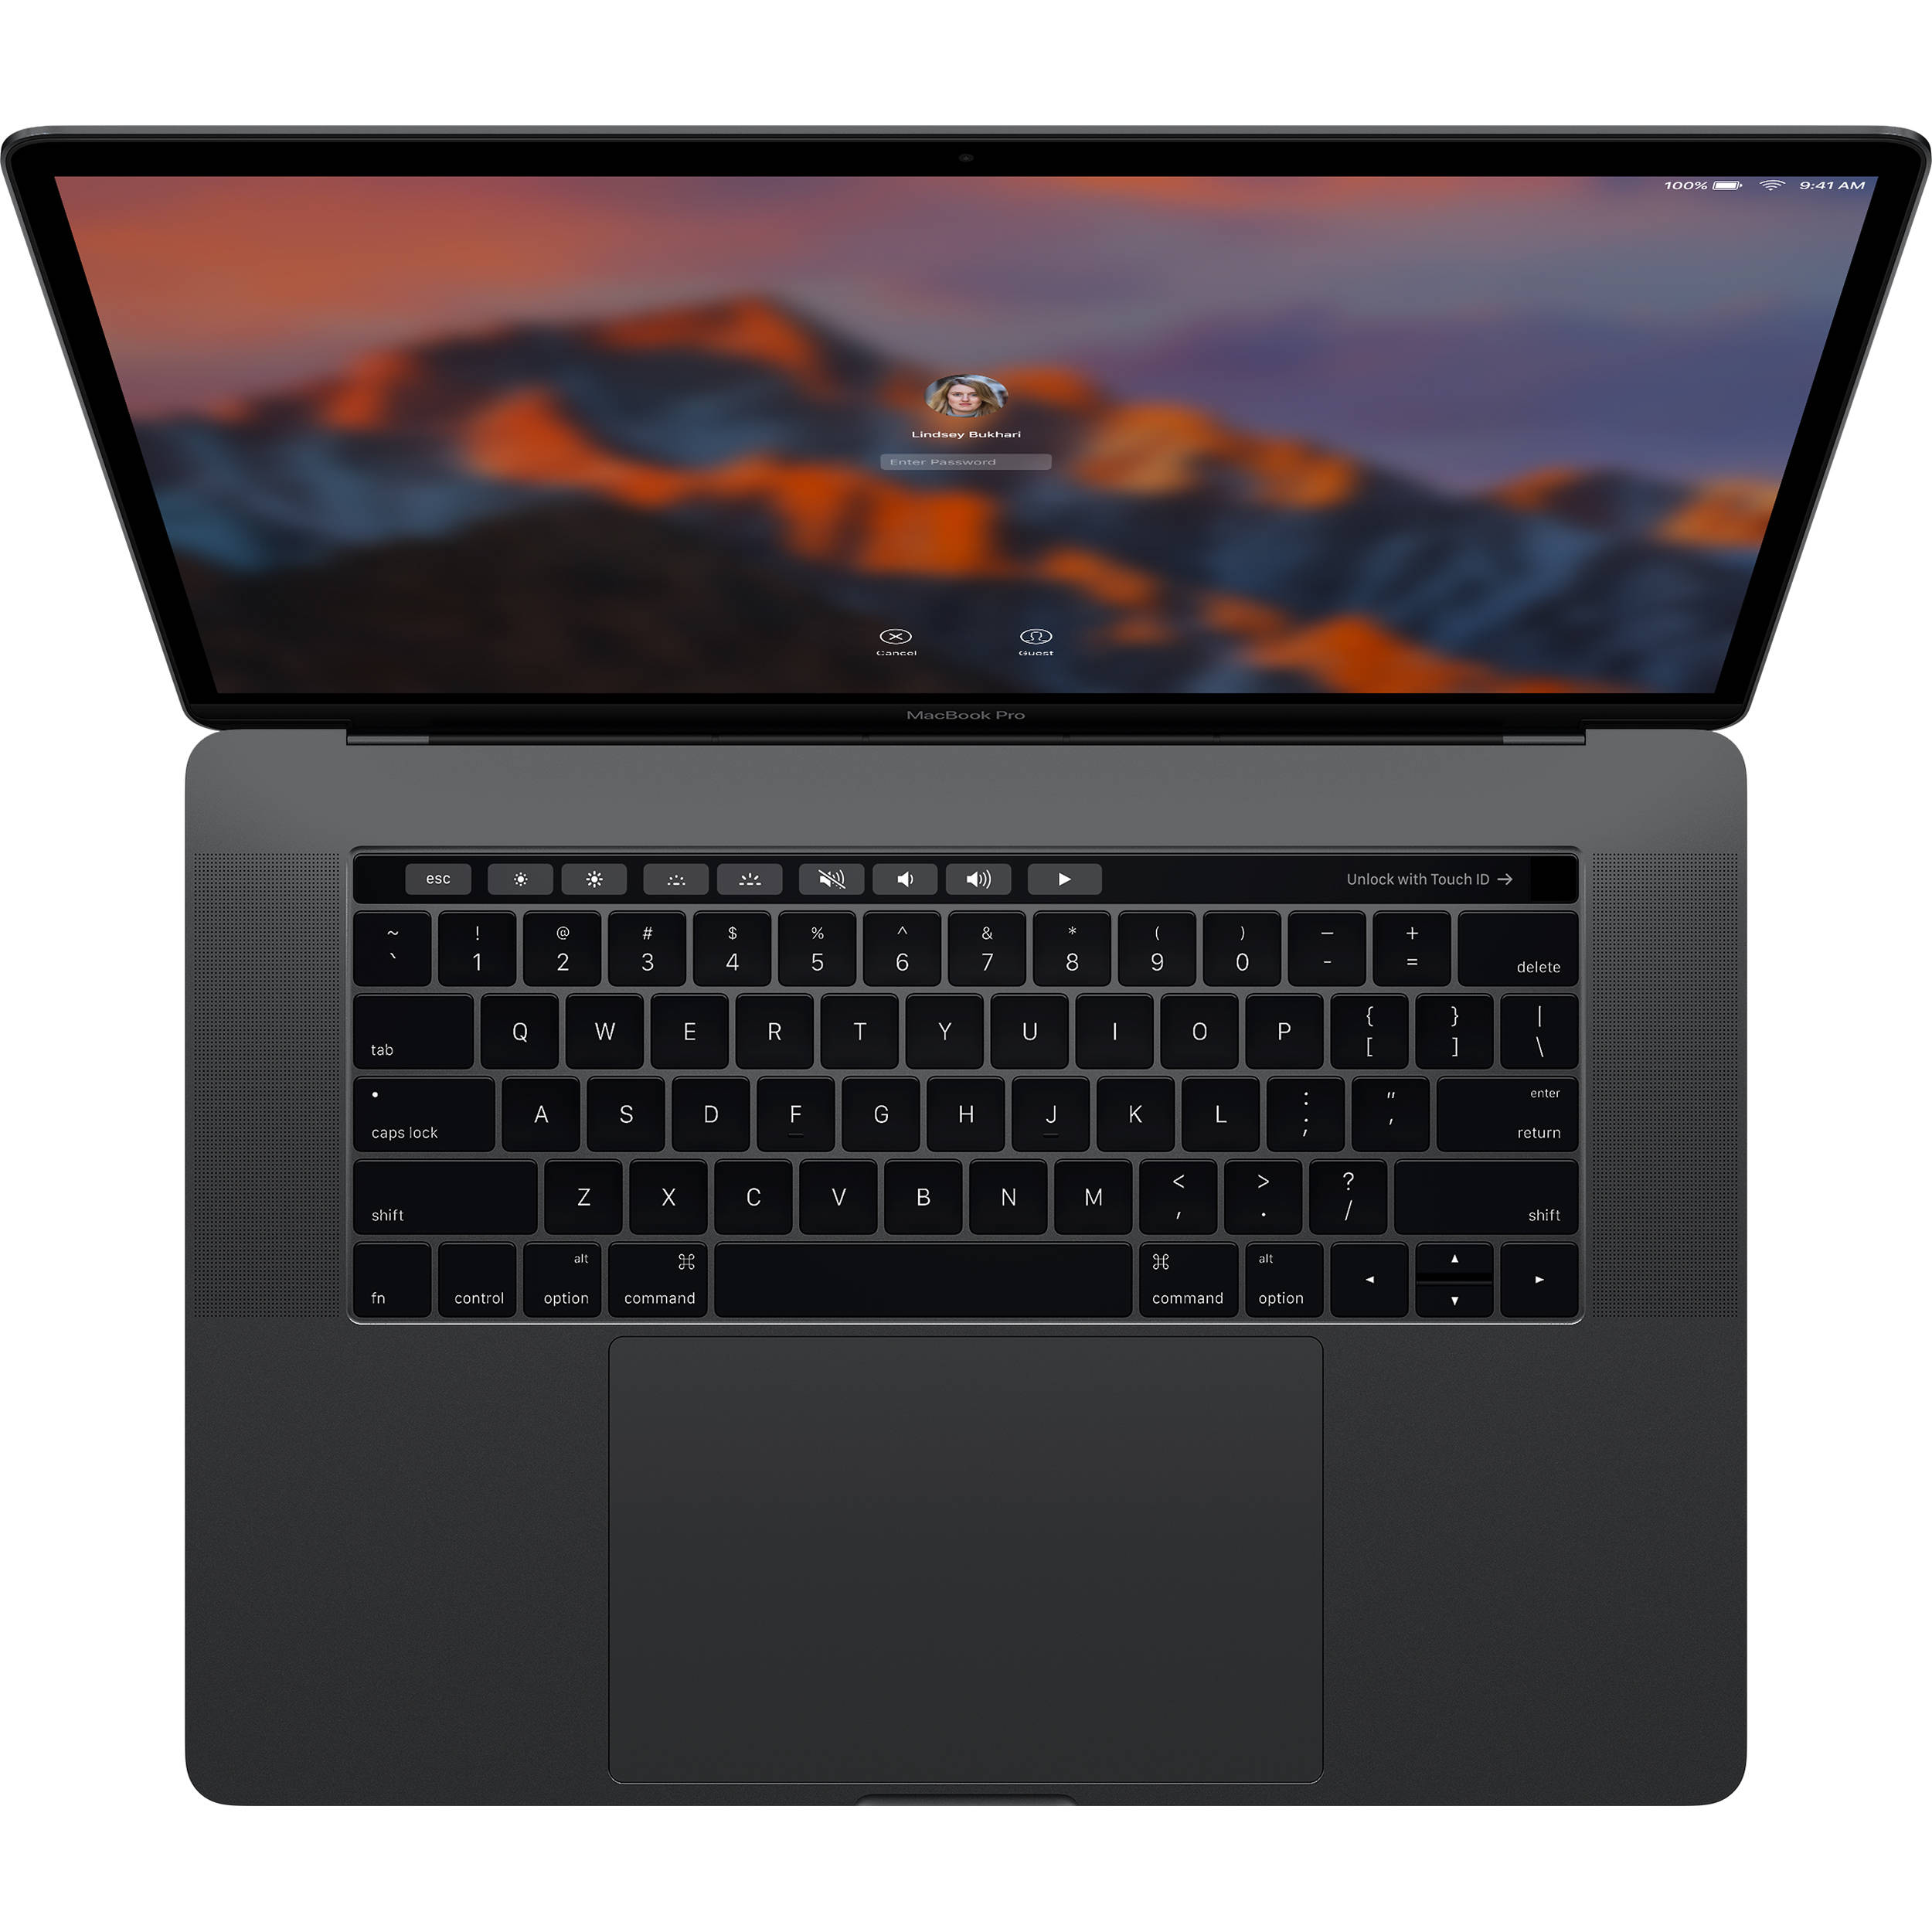 MPTT2 - Macbook Pro 2017 15 inch Quad I7 2.9Ghz 16GB 512GB Radeon Pro 560 4GB ( Space Gray) New 97%